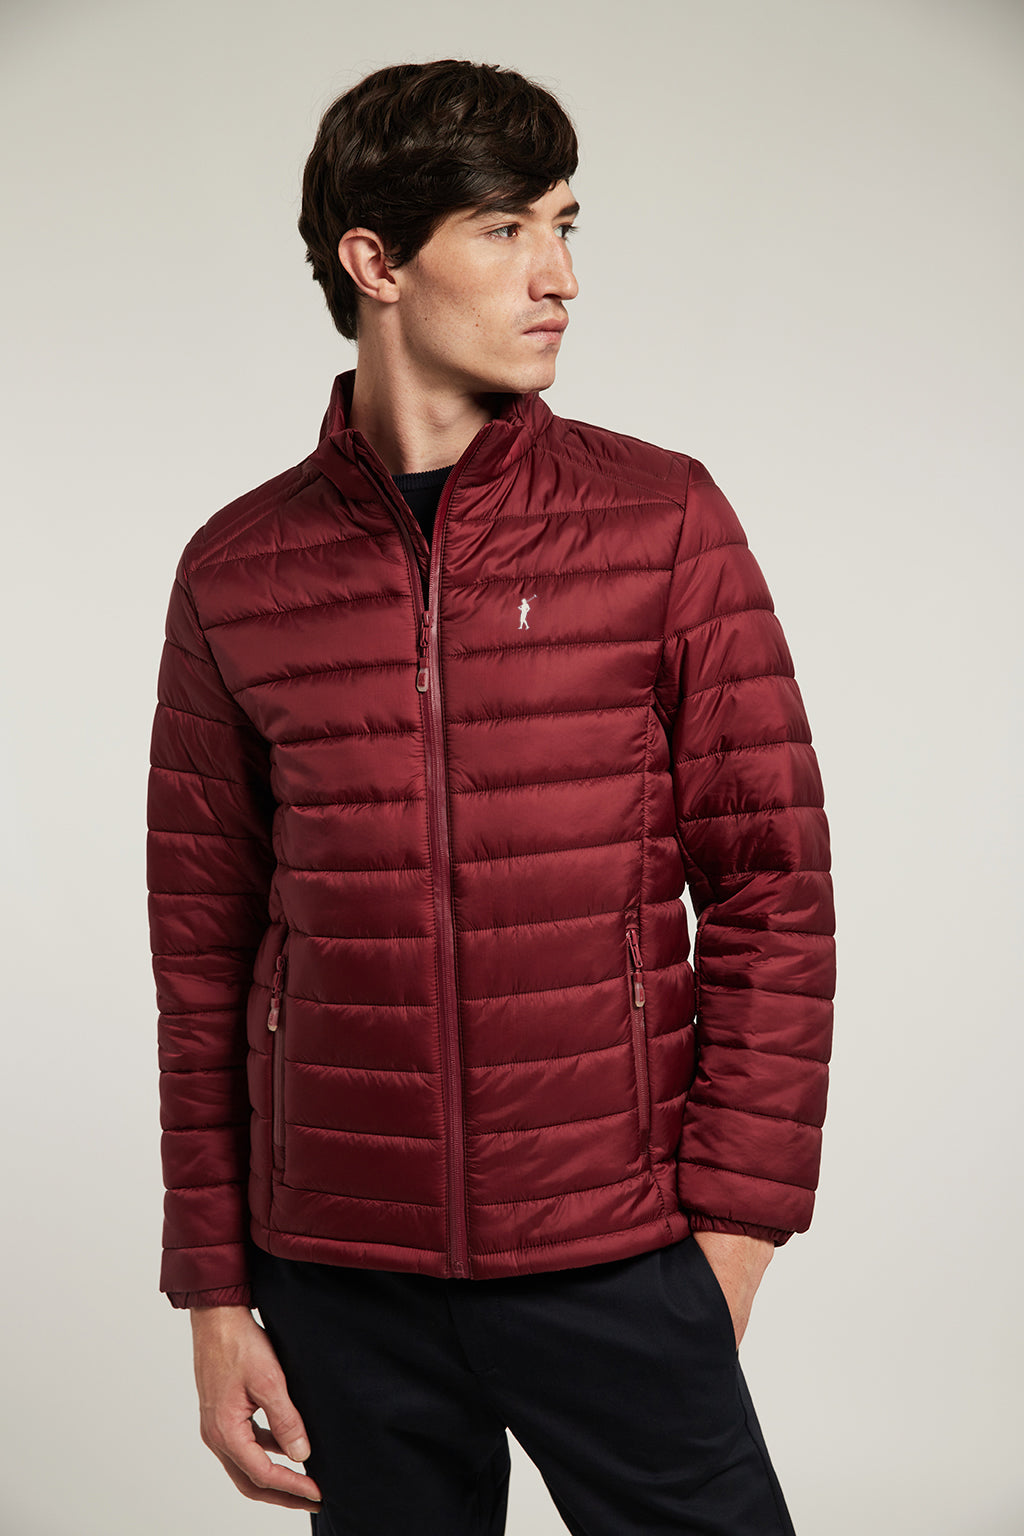 Maroon quilted jacket with heat-sealed zip closure